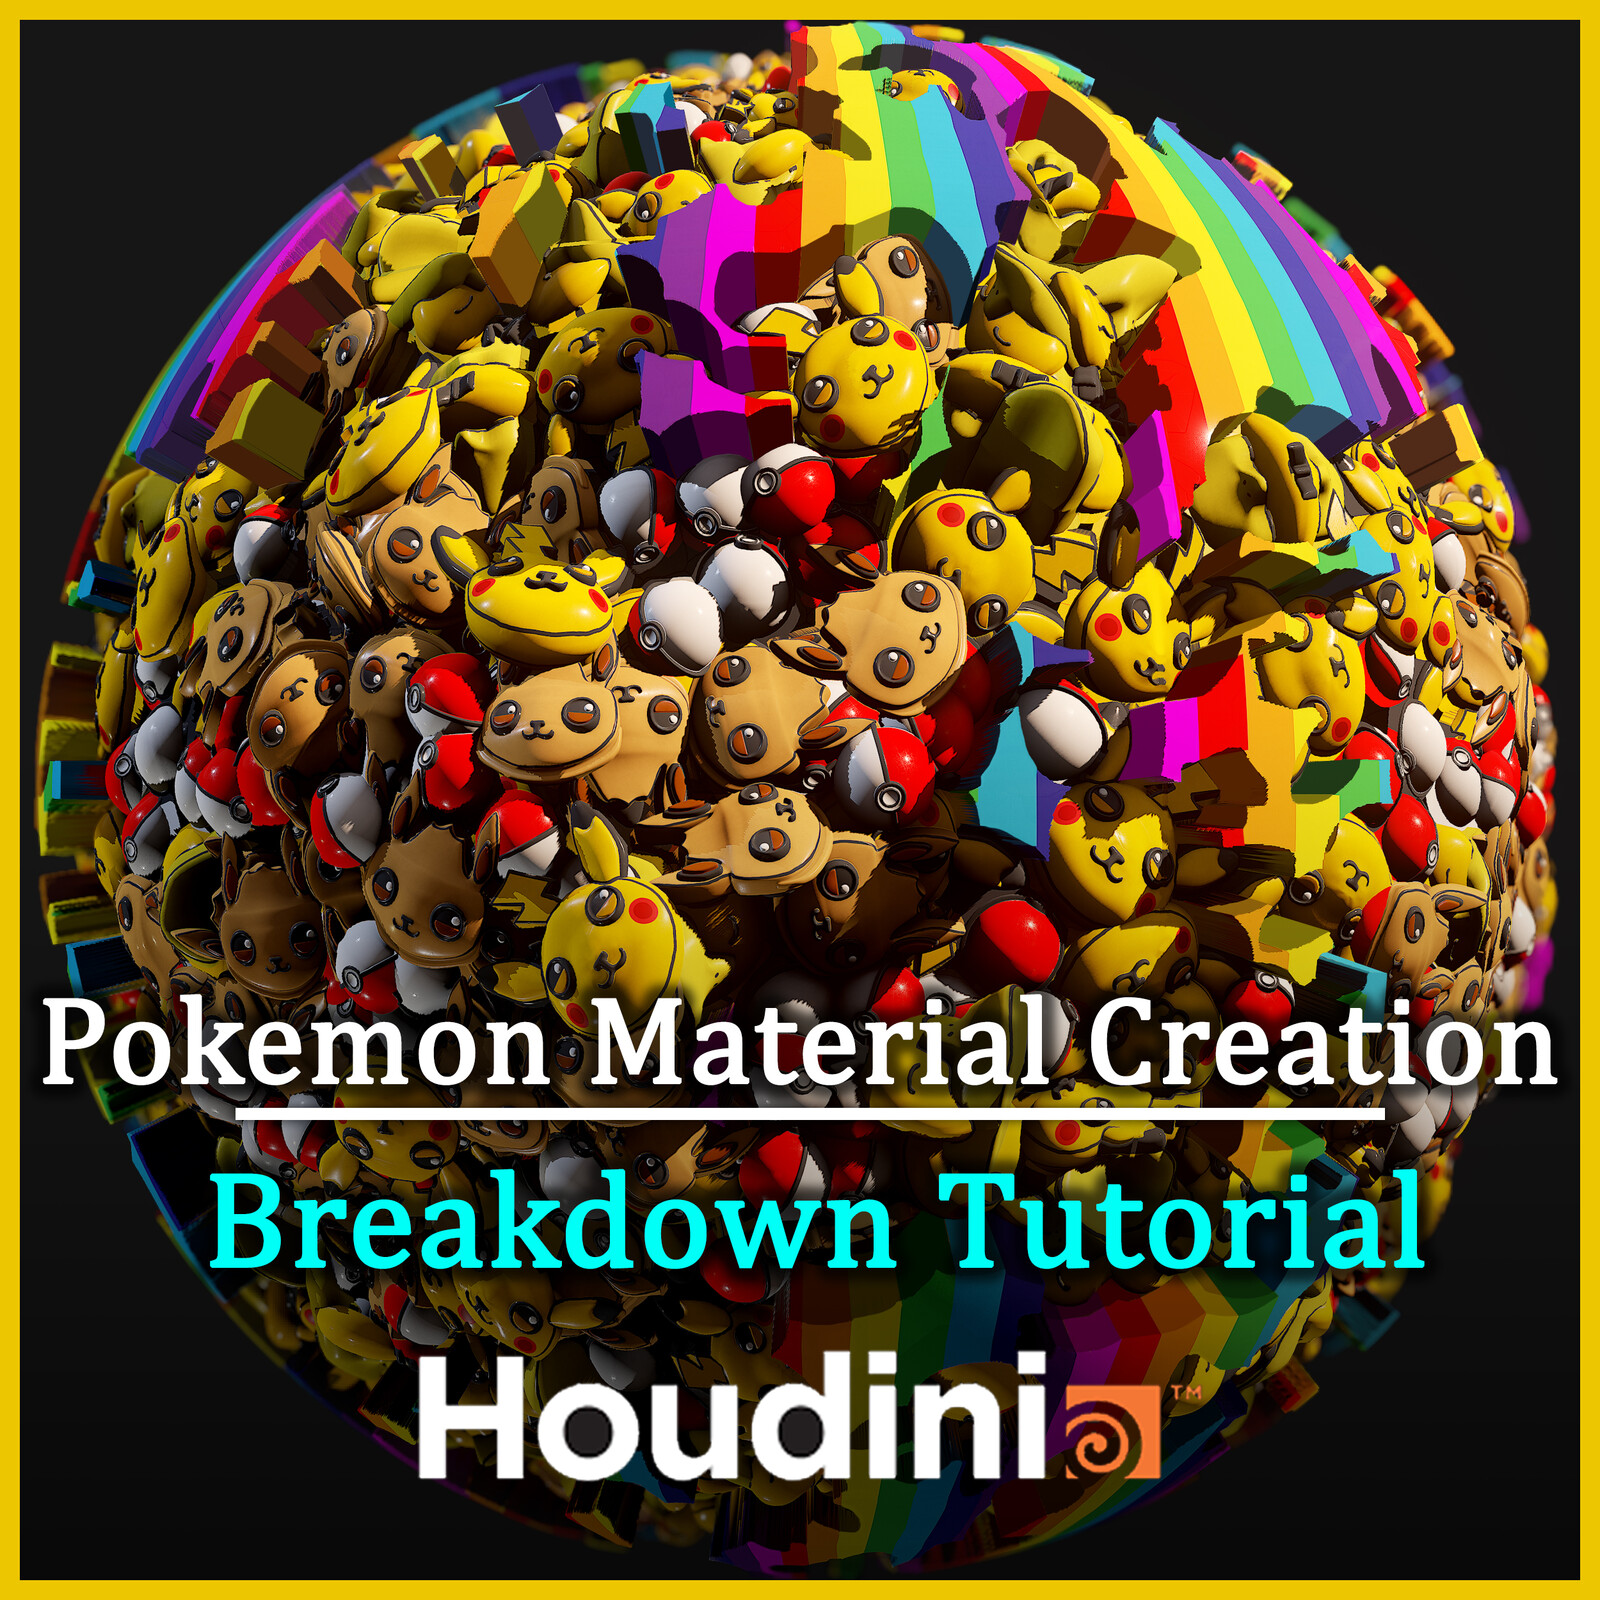 Pokemon Material Creation Tutorial Breakdown in Houdini